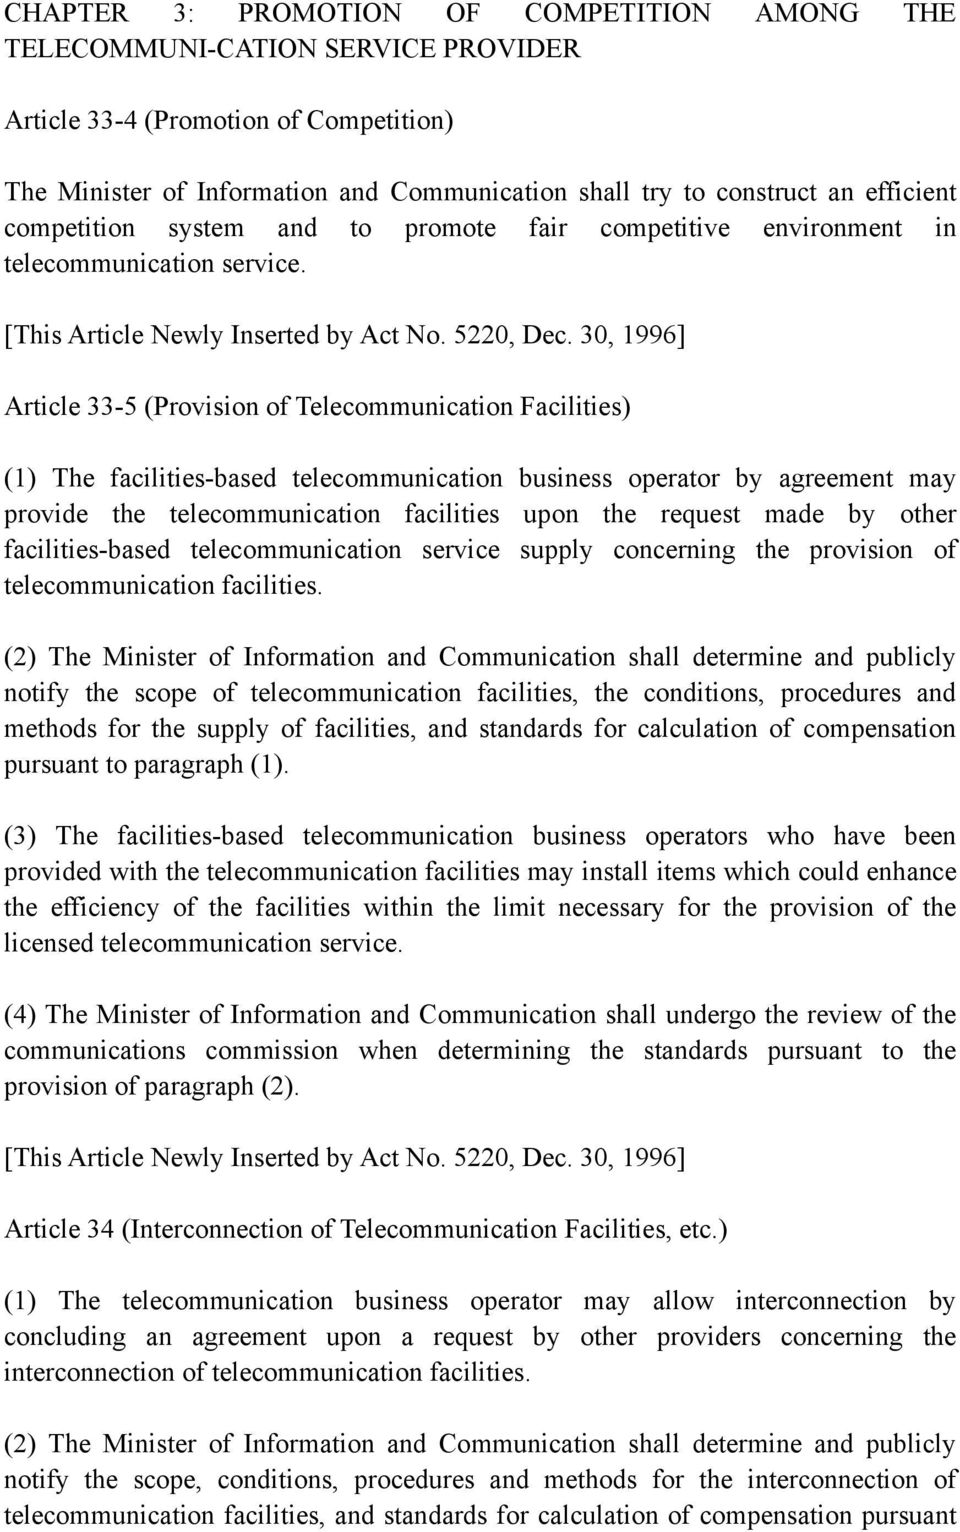 30, 1996] Article 33-5 (Provision of Telecommunication Facilities) (1) The facilities-based telecommunication business operator by agreement may provide the telecommunication facilities upon the